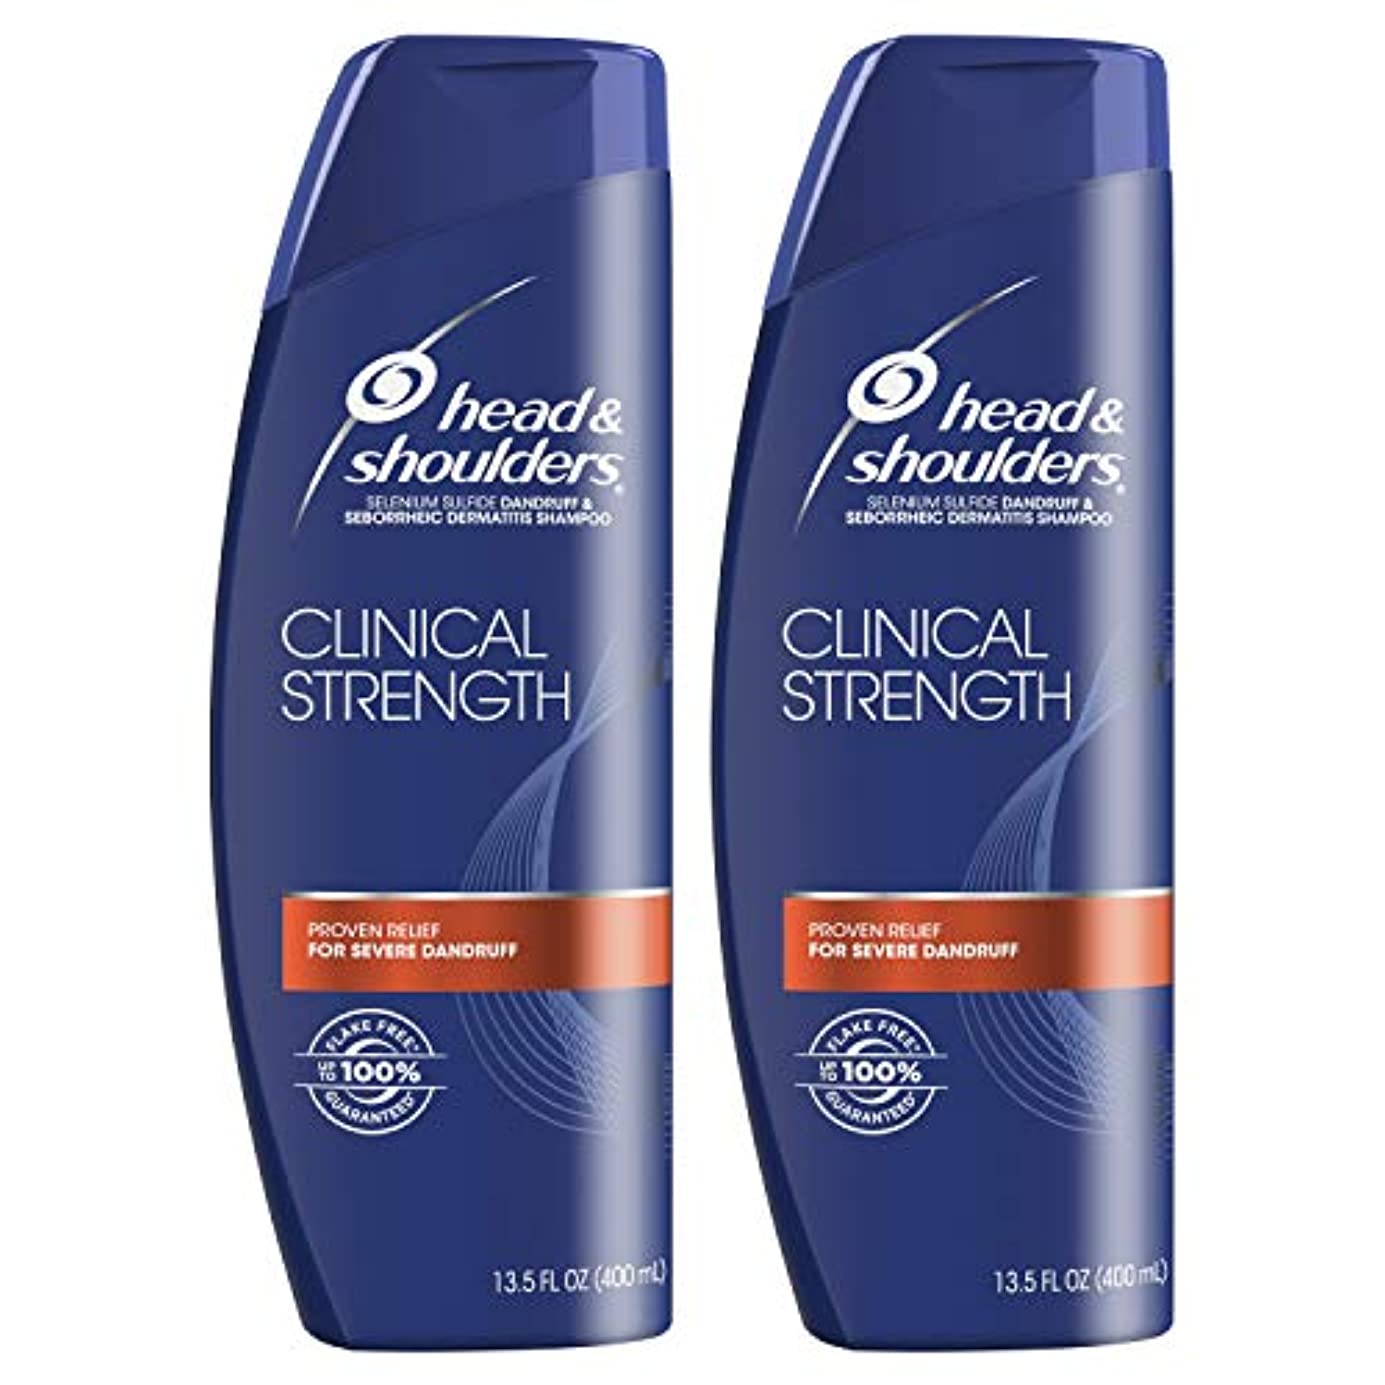 州タンパク質ストレージHead and Shoulders Clinical Strength Dandruff and Seborrheic Dermatitisシャンプー、13.5 FL OZ